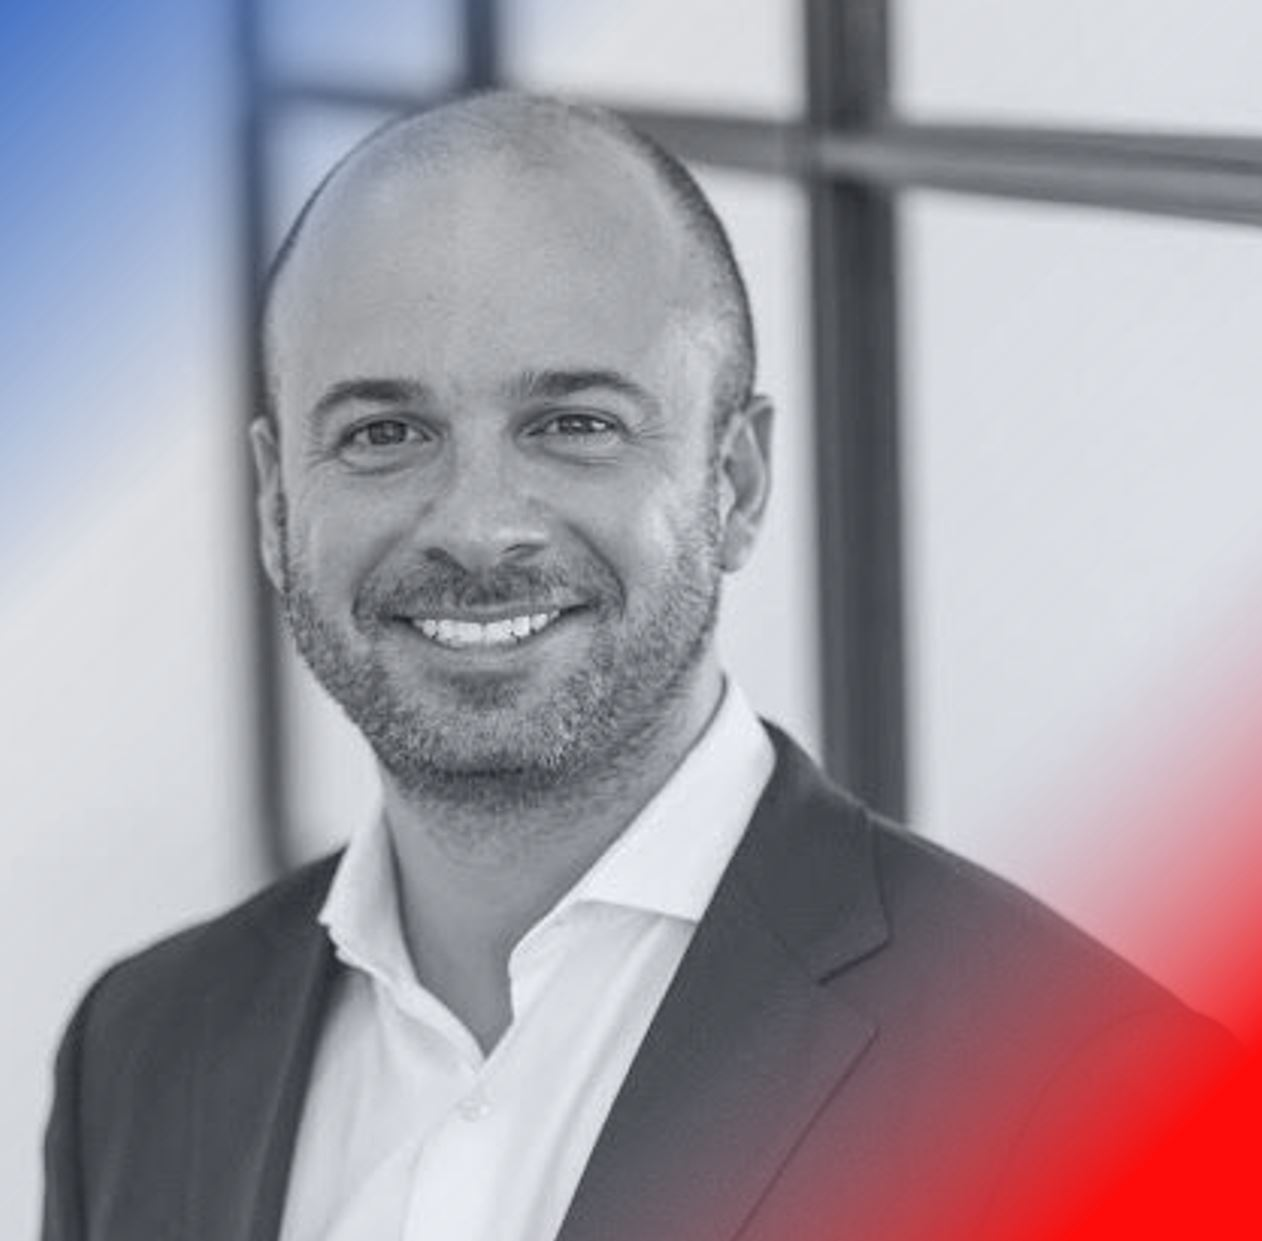 David Arditi is a founding principal at Aria Development Group and leads the Miami office and shares responsibility for all acquisitions, development and asset management. In addition, he is a member of the Investment Committee.